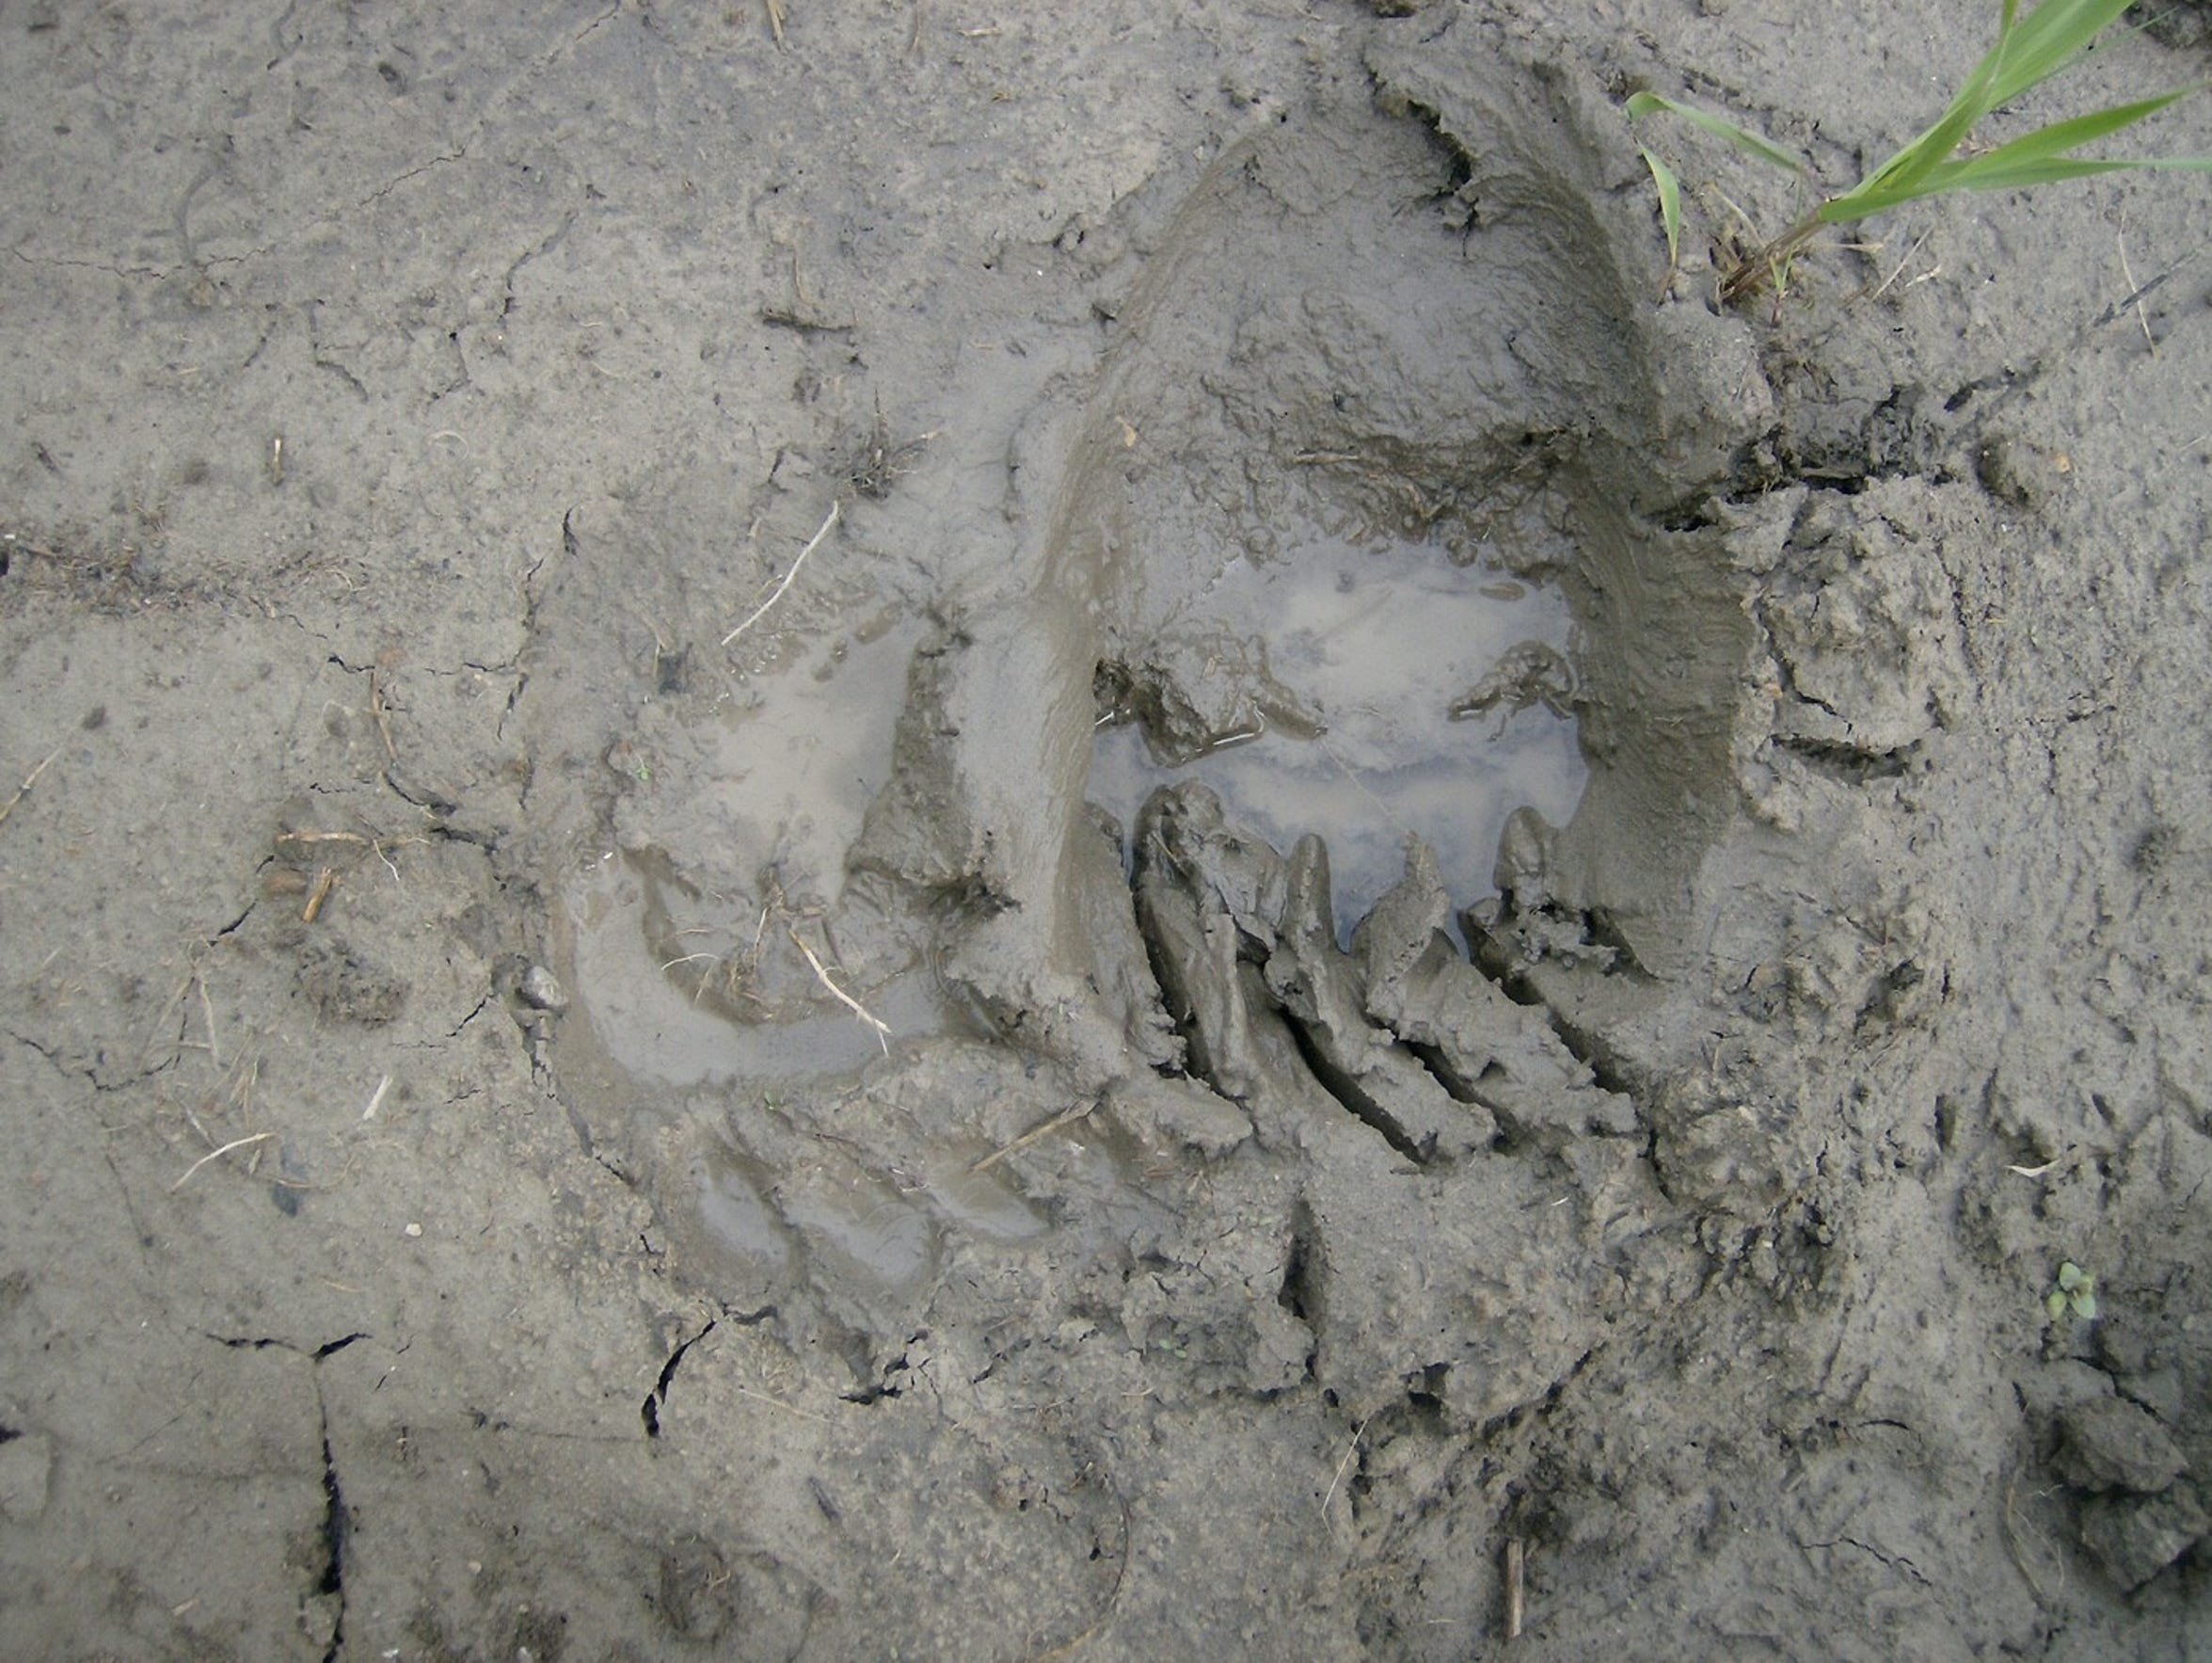 A track left by a grizzly bear near the Missouri River